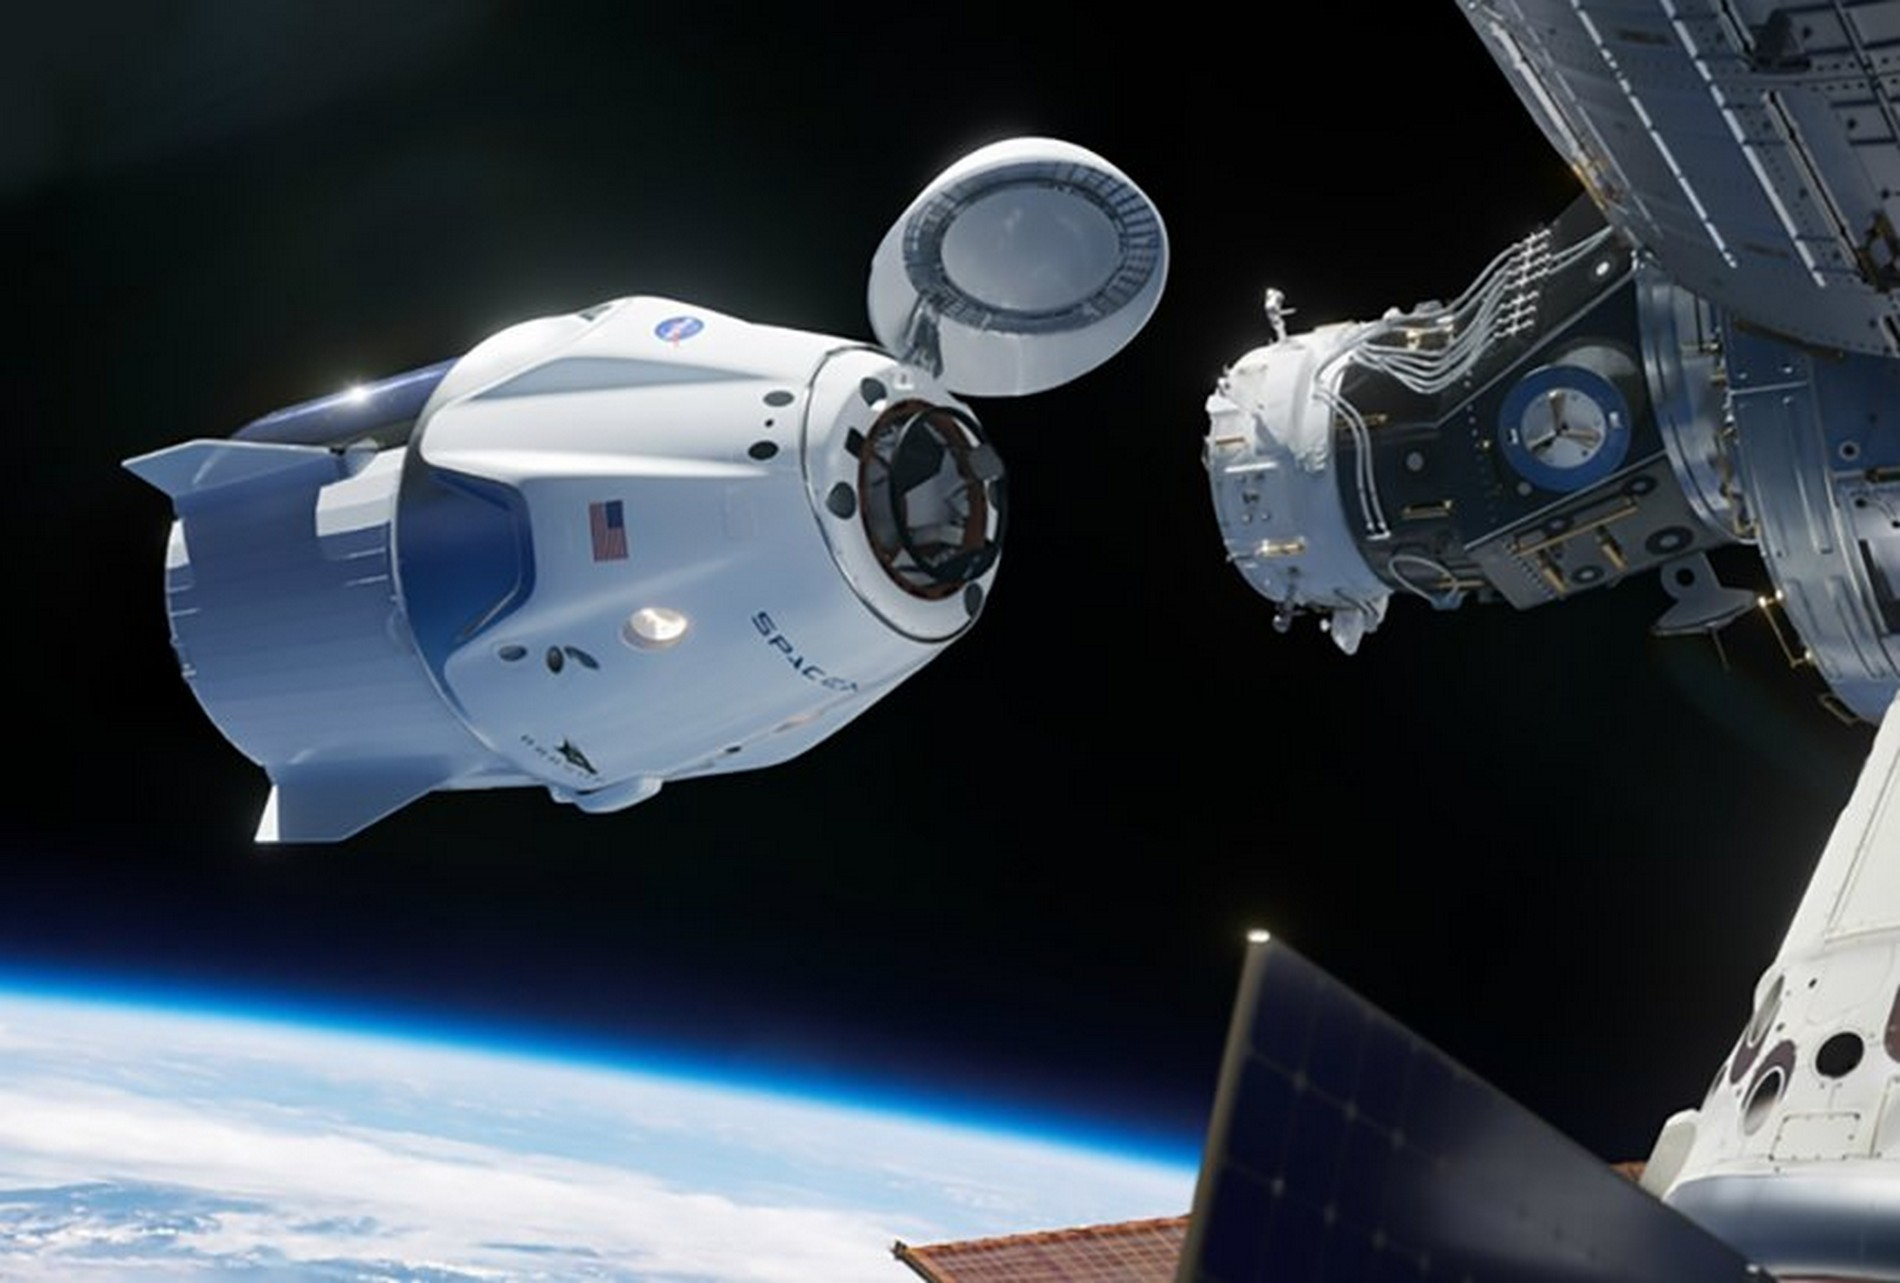 video nasa spacex iss crew dragon autonomne zakotvila vesmirna lod